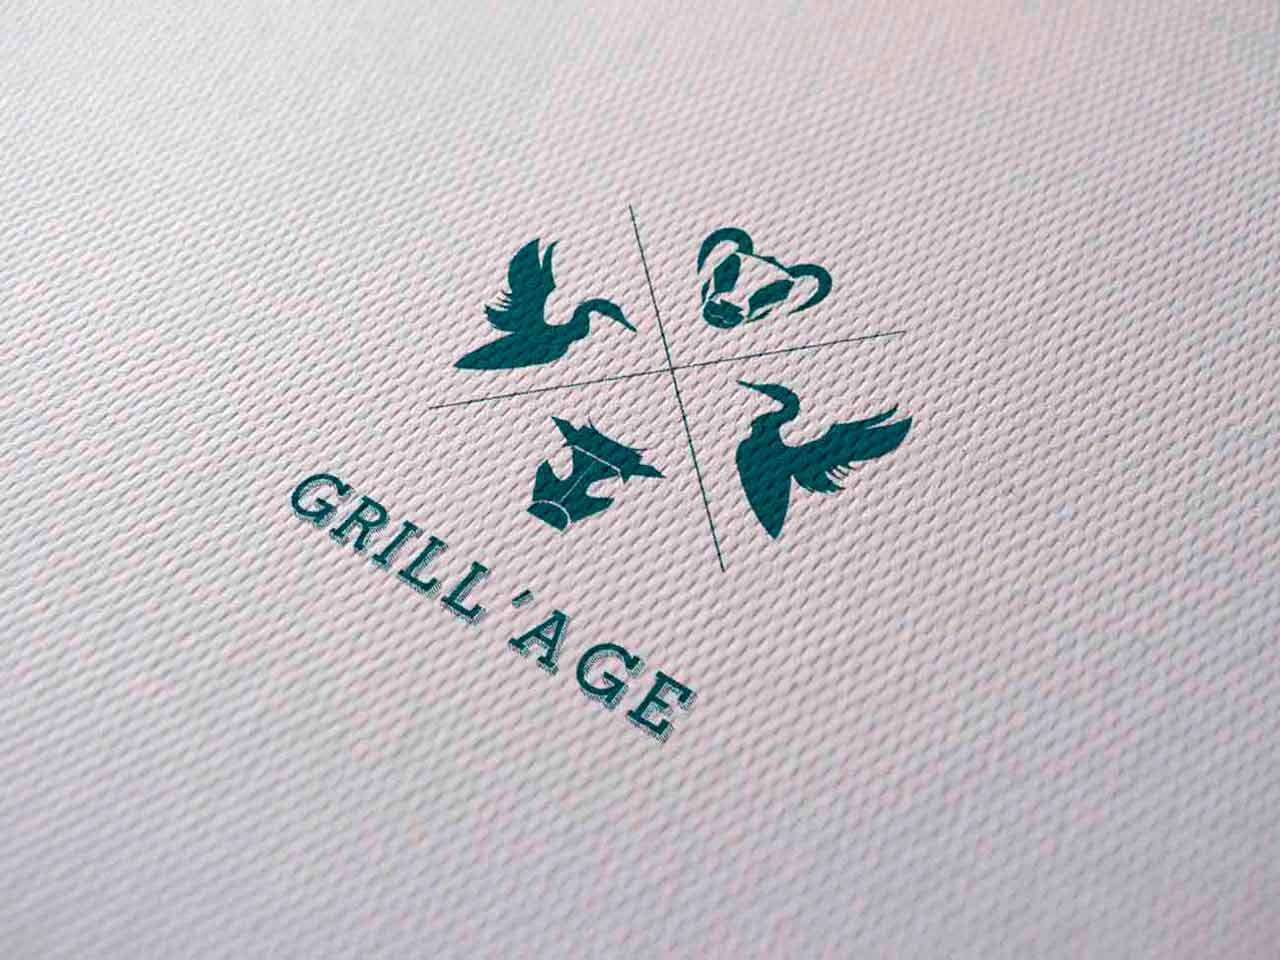 Grill'Age logo on paper